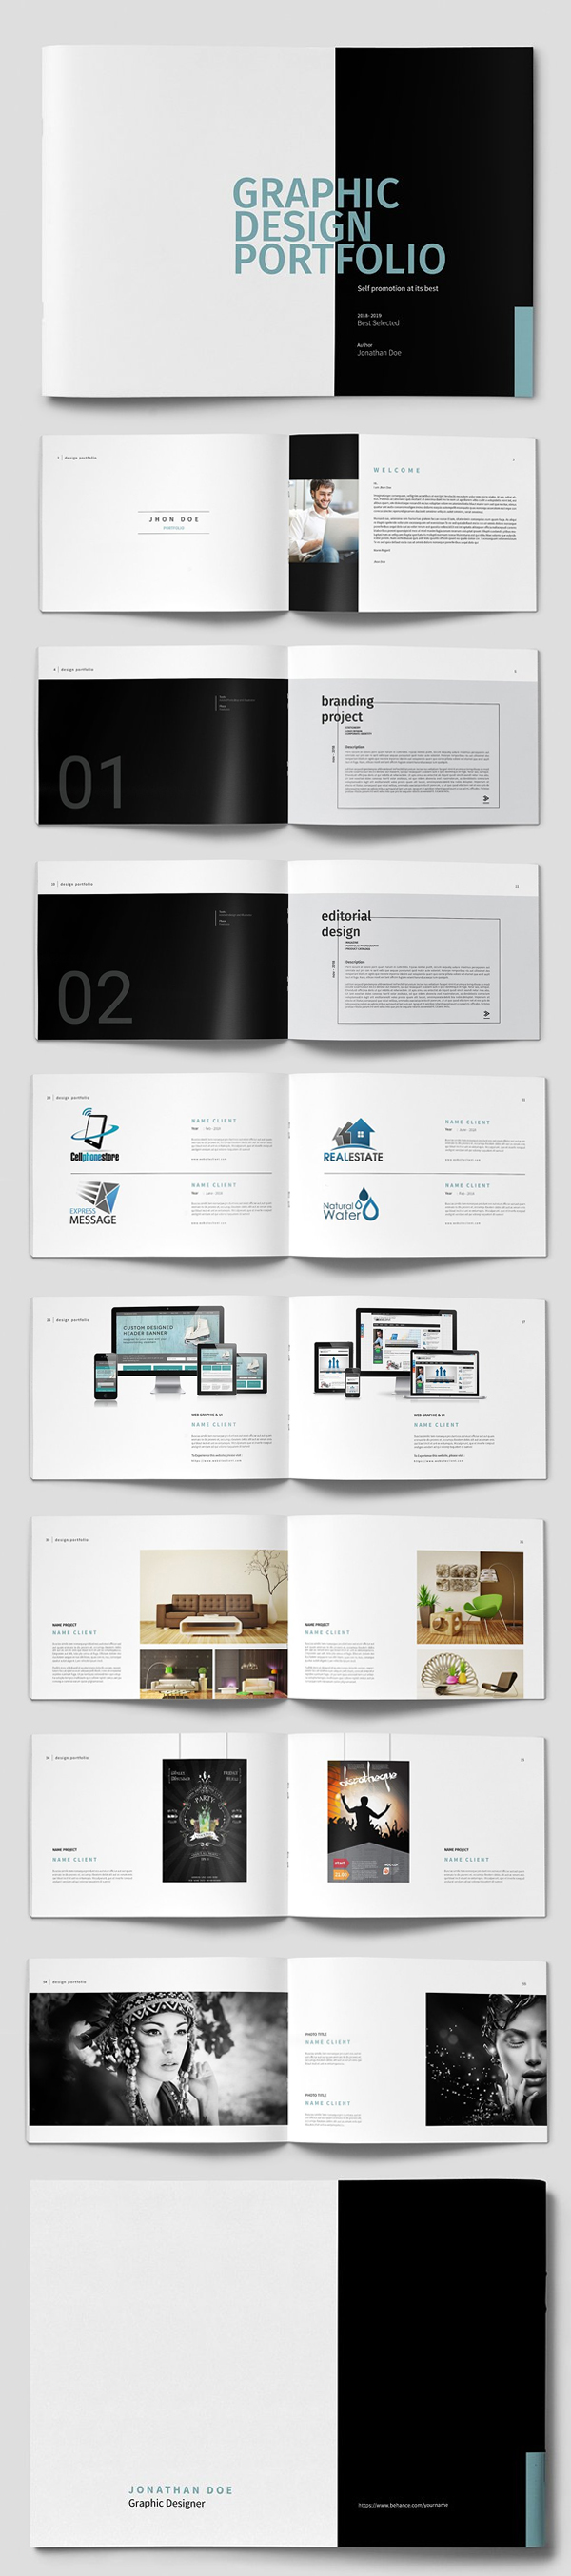 100 Professional Corporate Brochure Templates - 45